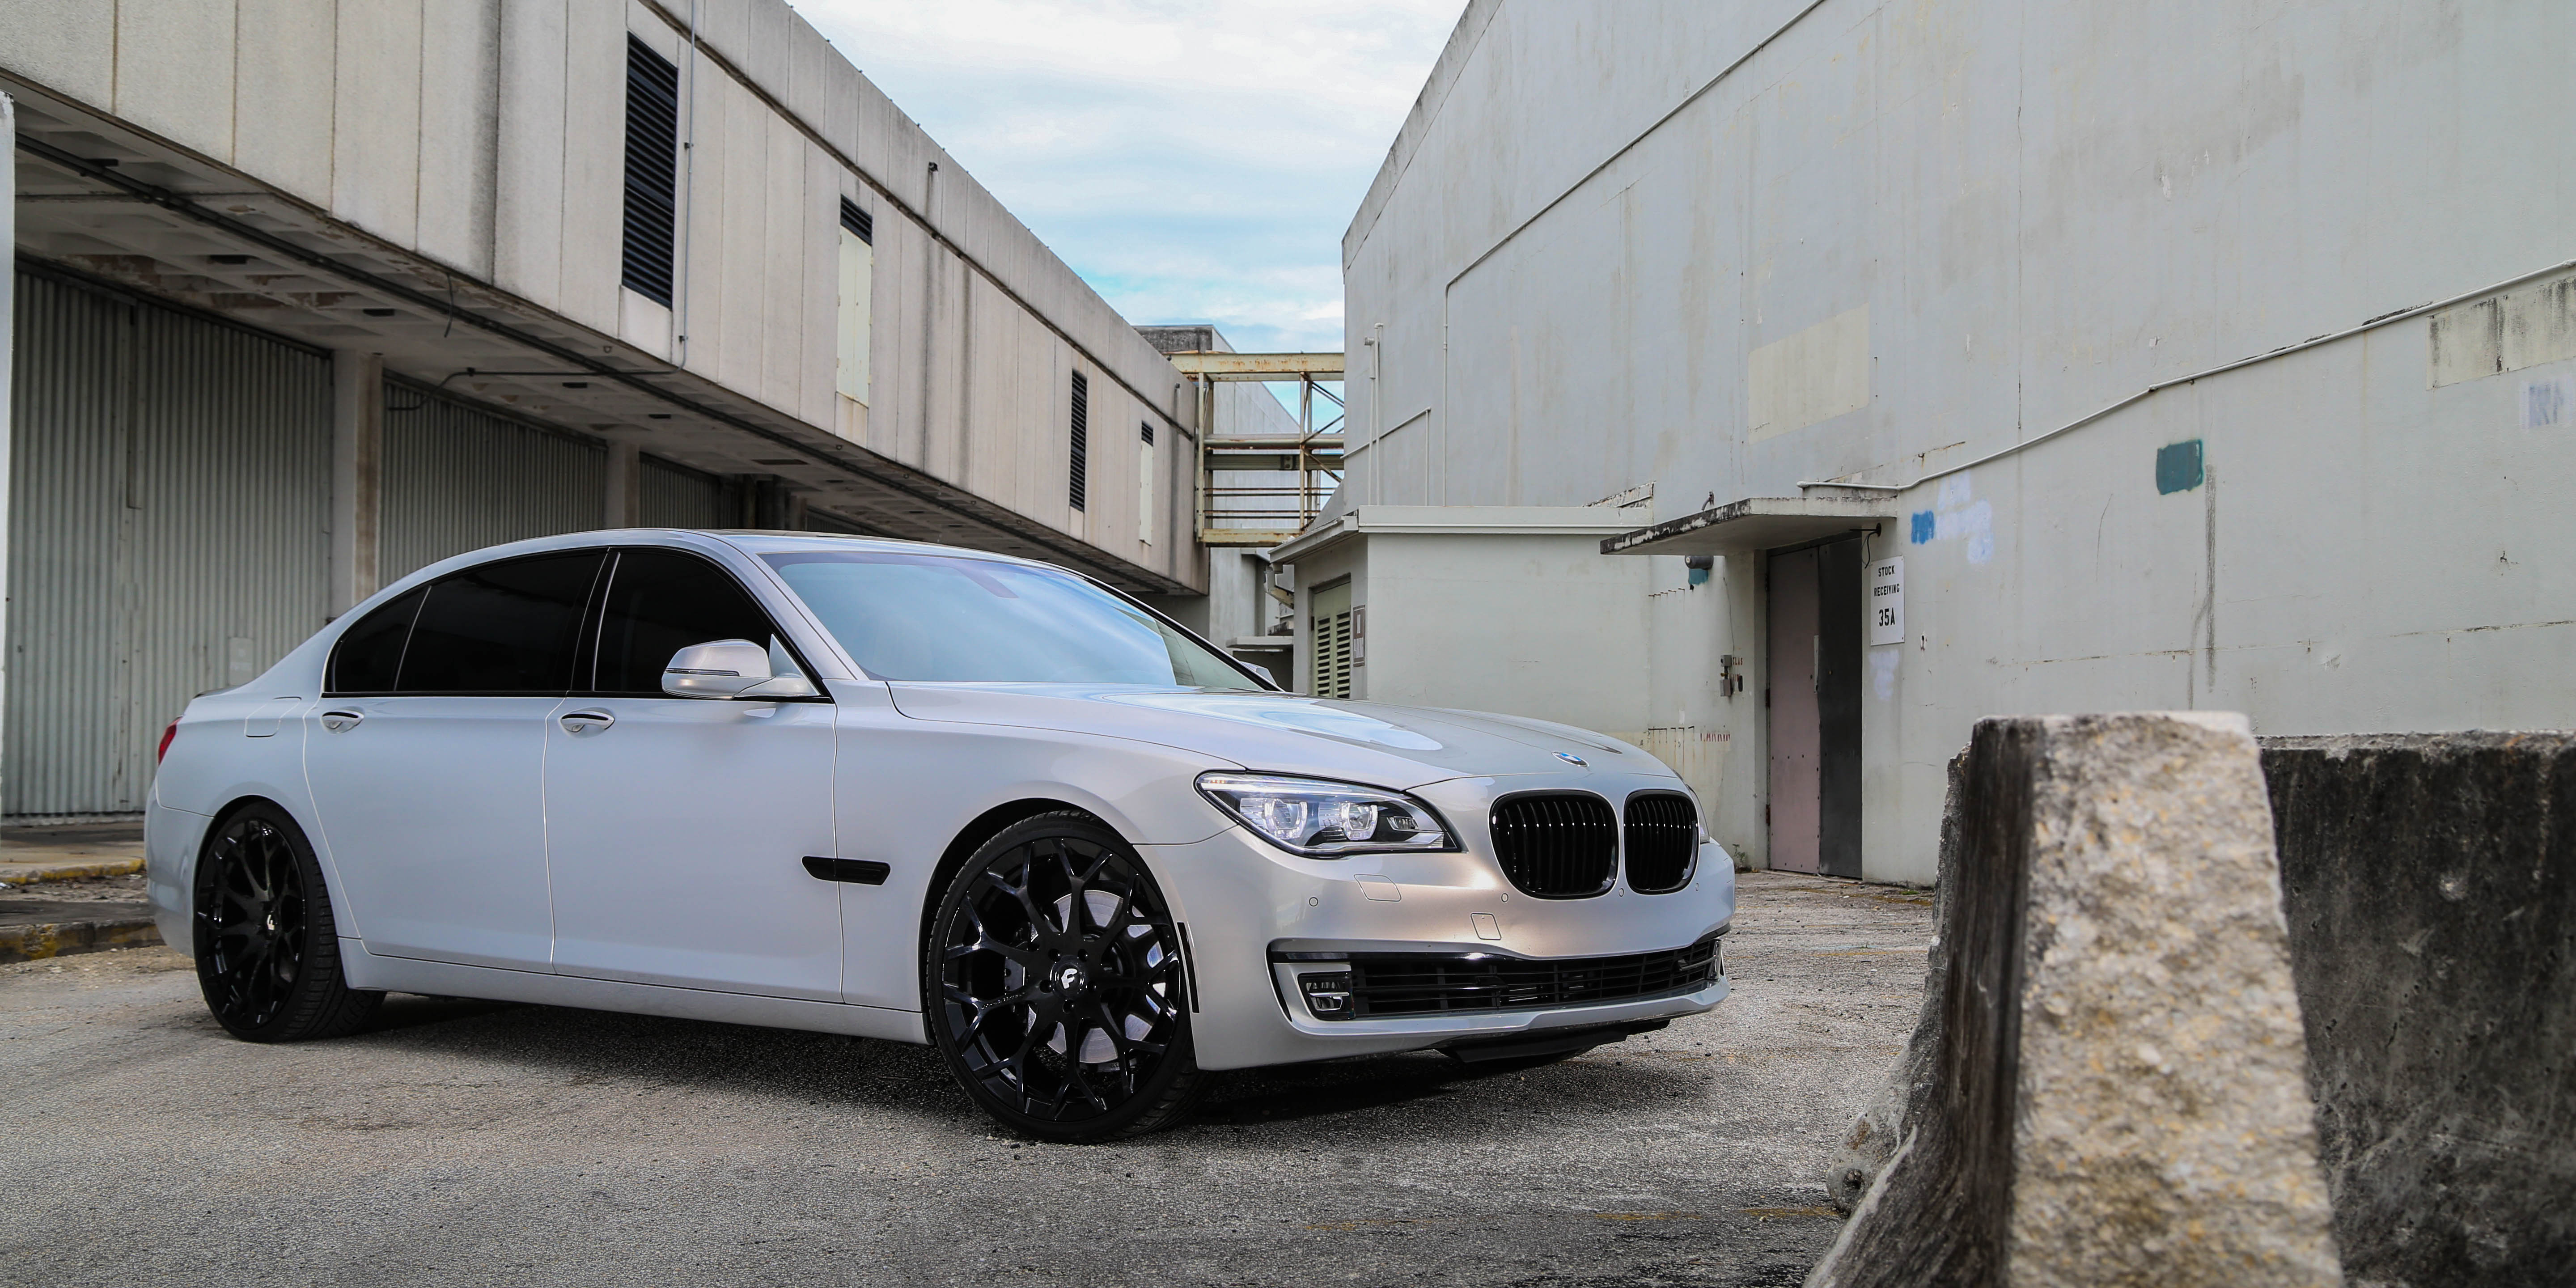 BMW 7 SERIES ON DREA WHEELS